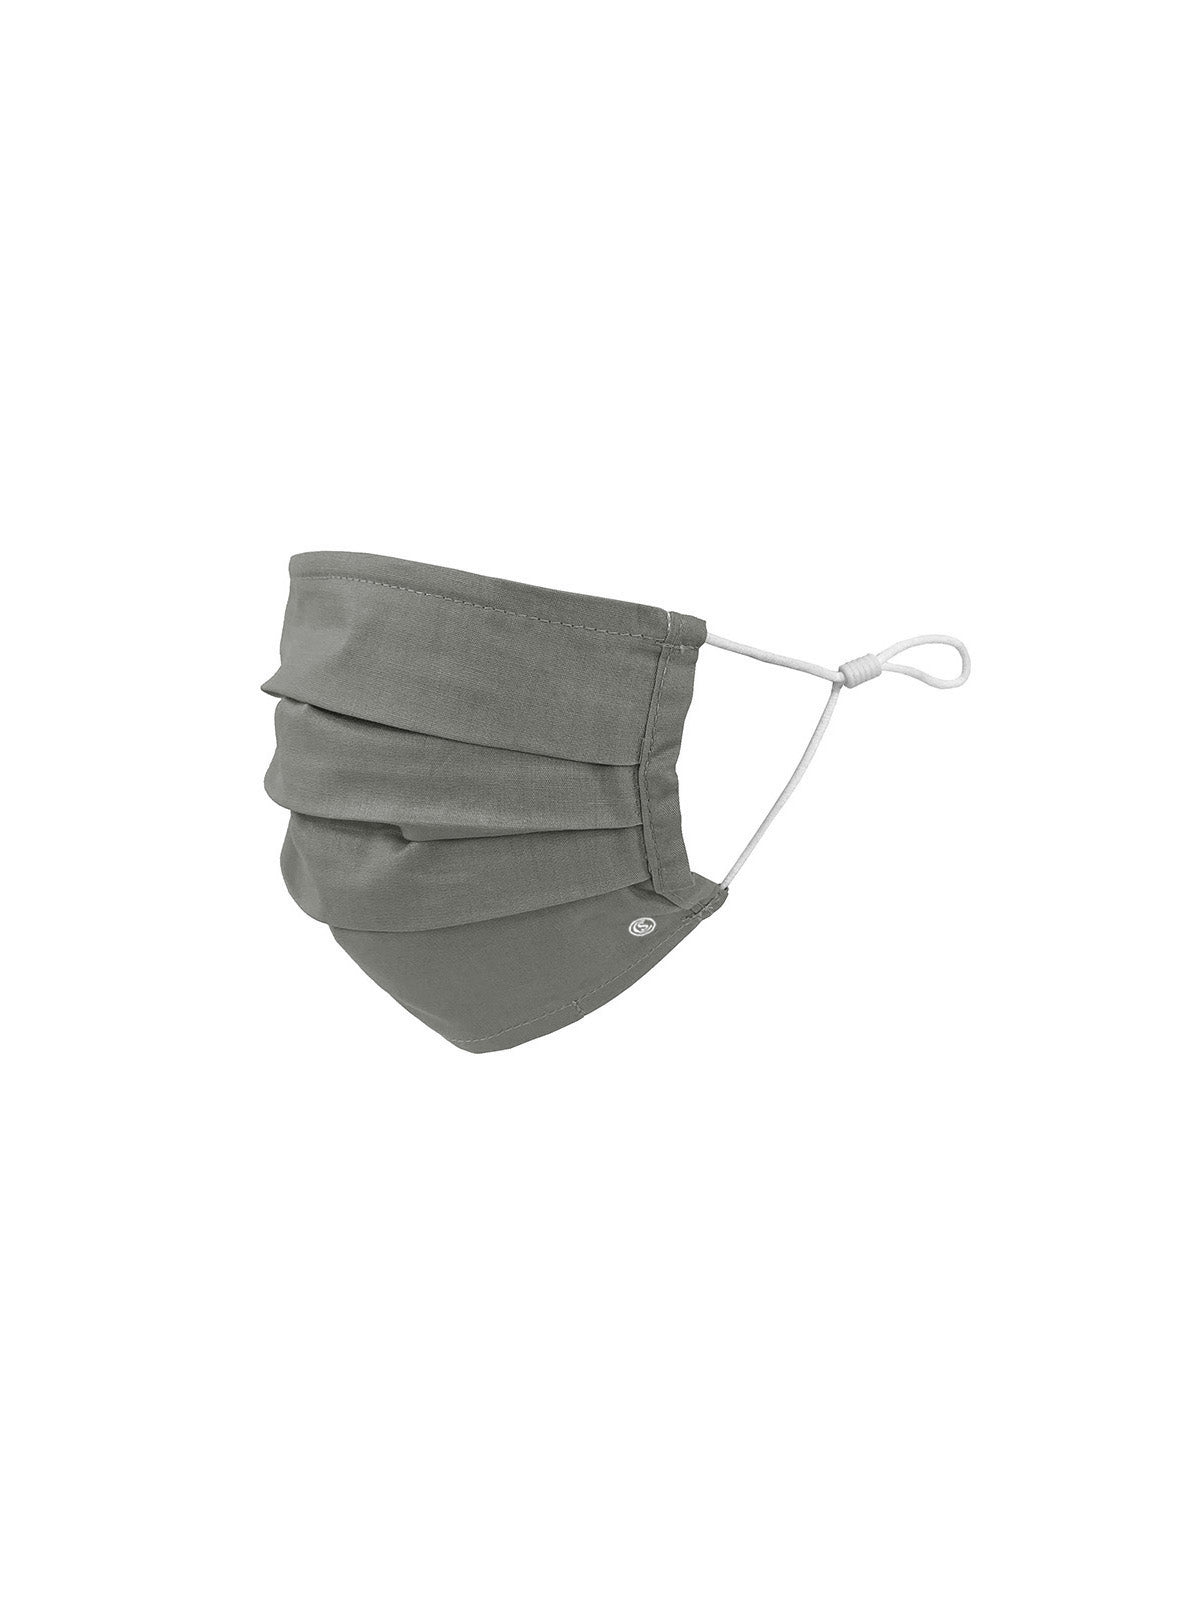 Essential Pleated Adult Face Mask 6 Pack-Grey 1